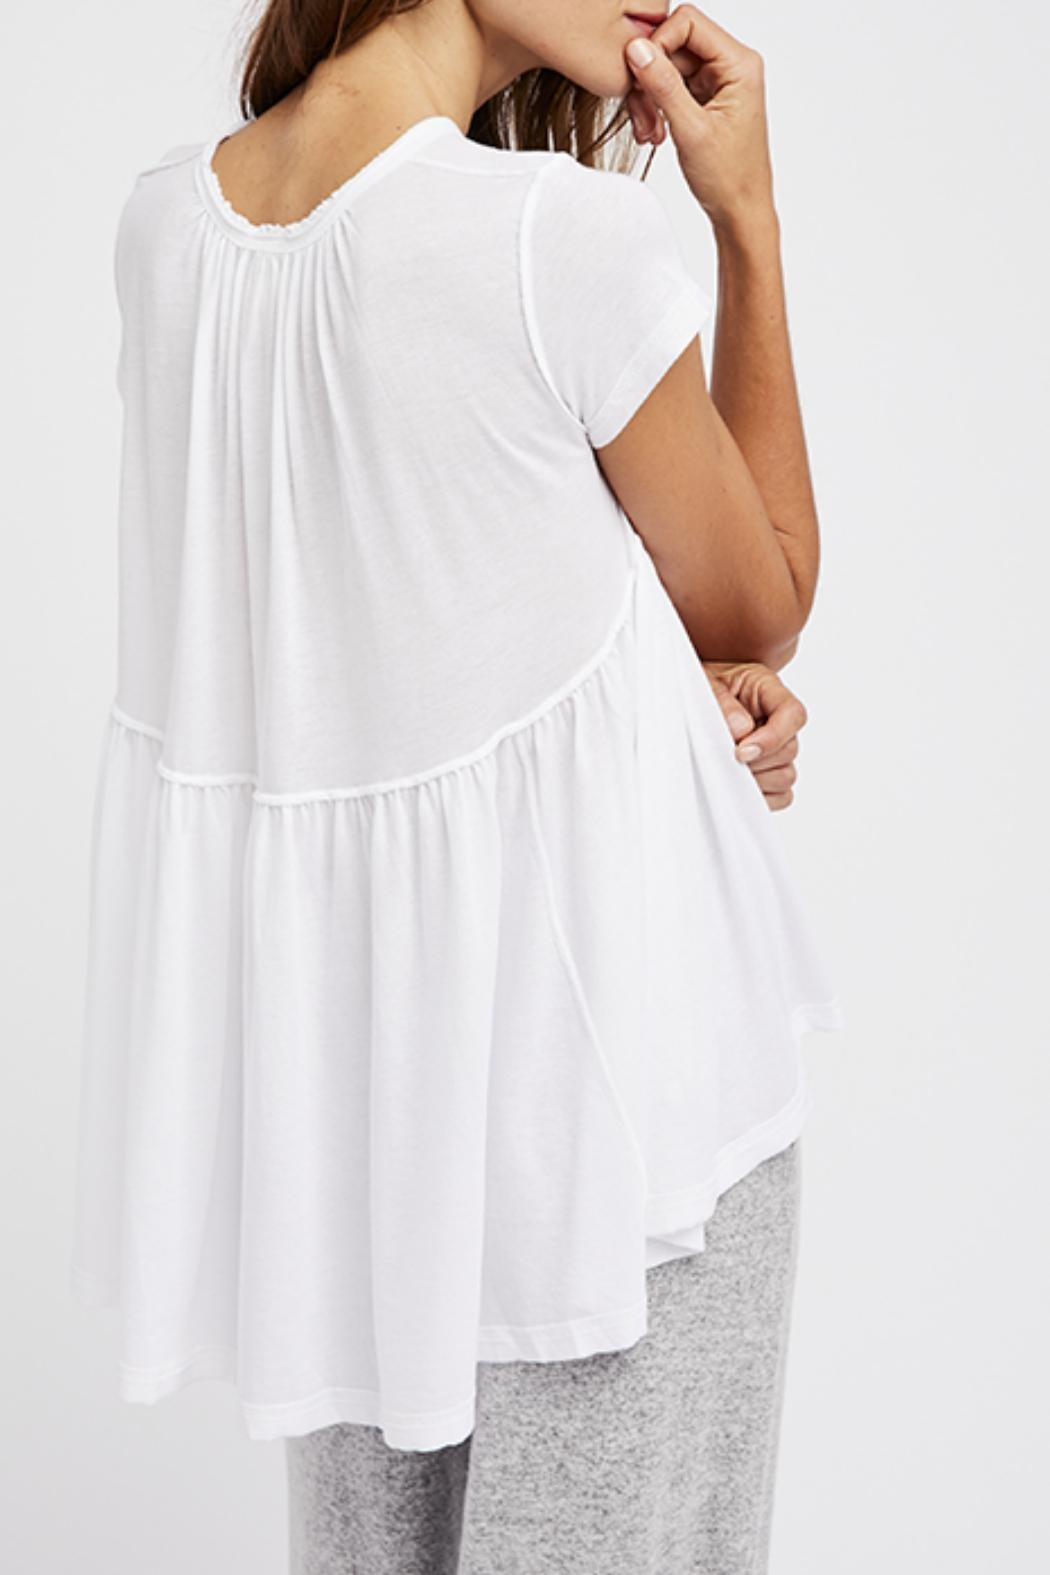 Free People It's Yours Tee - Front Full Image